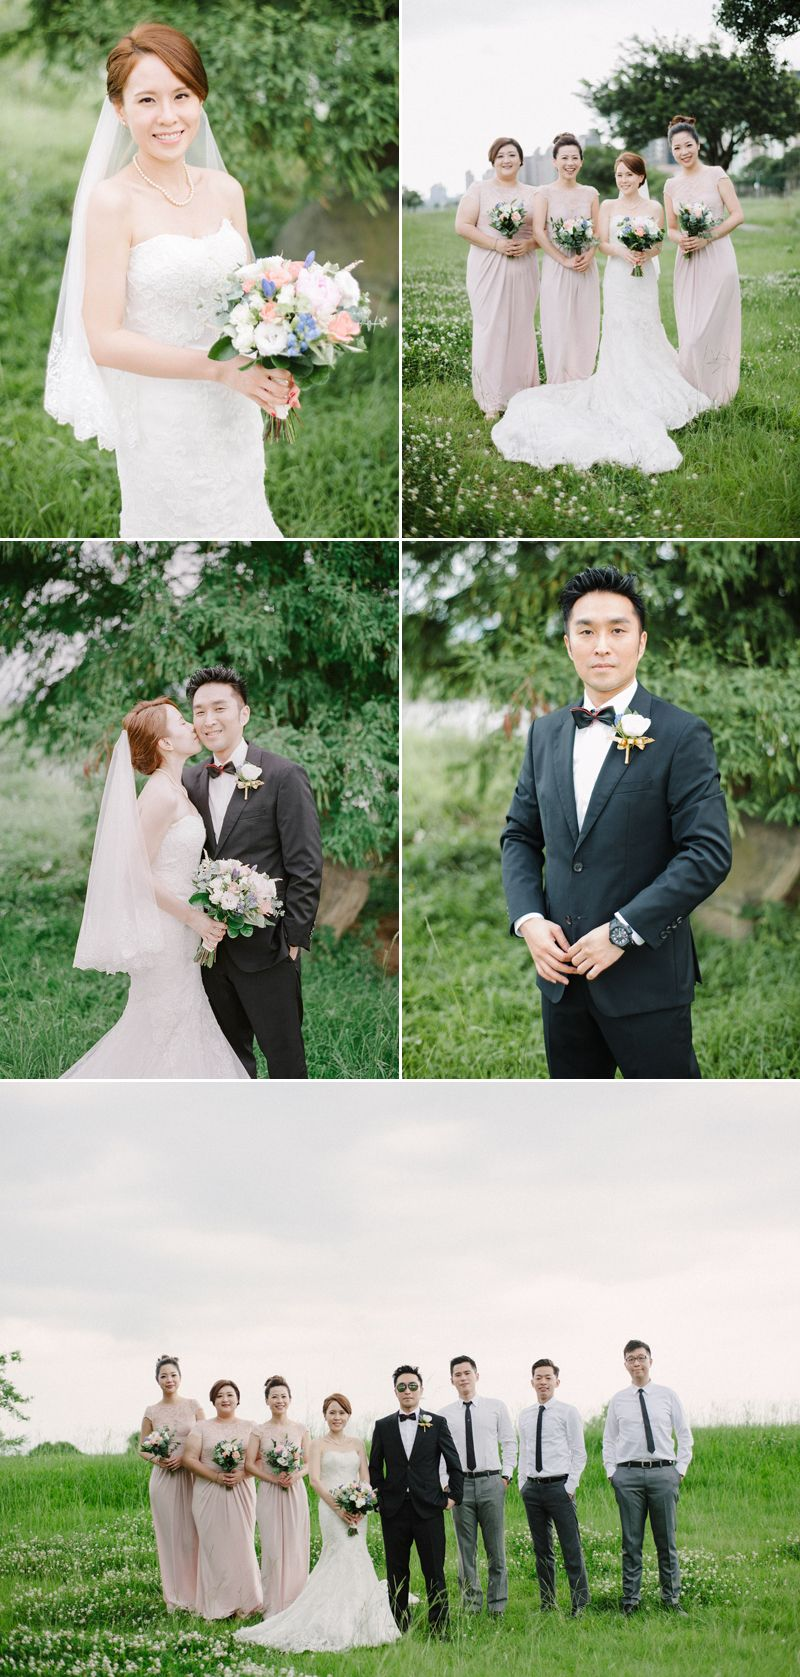 Romance and style come together for this bluehued wedding romance